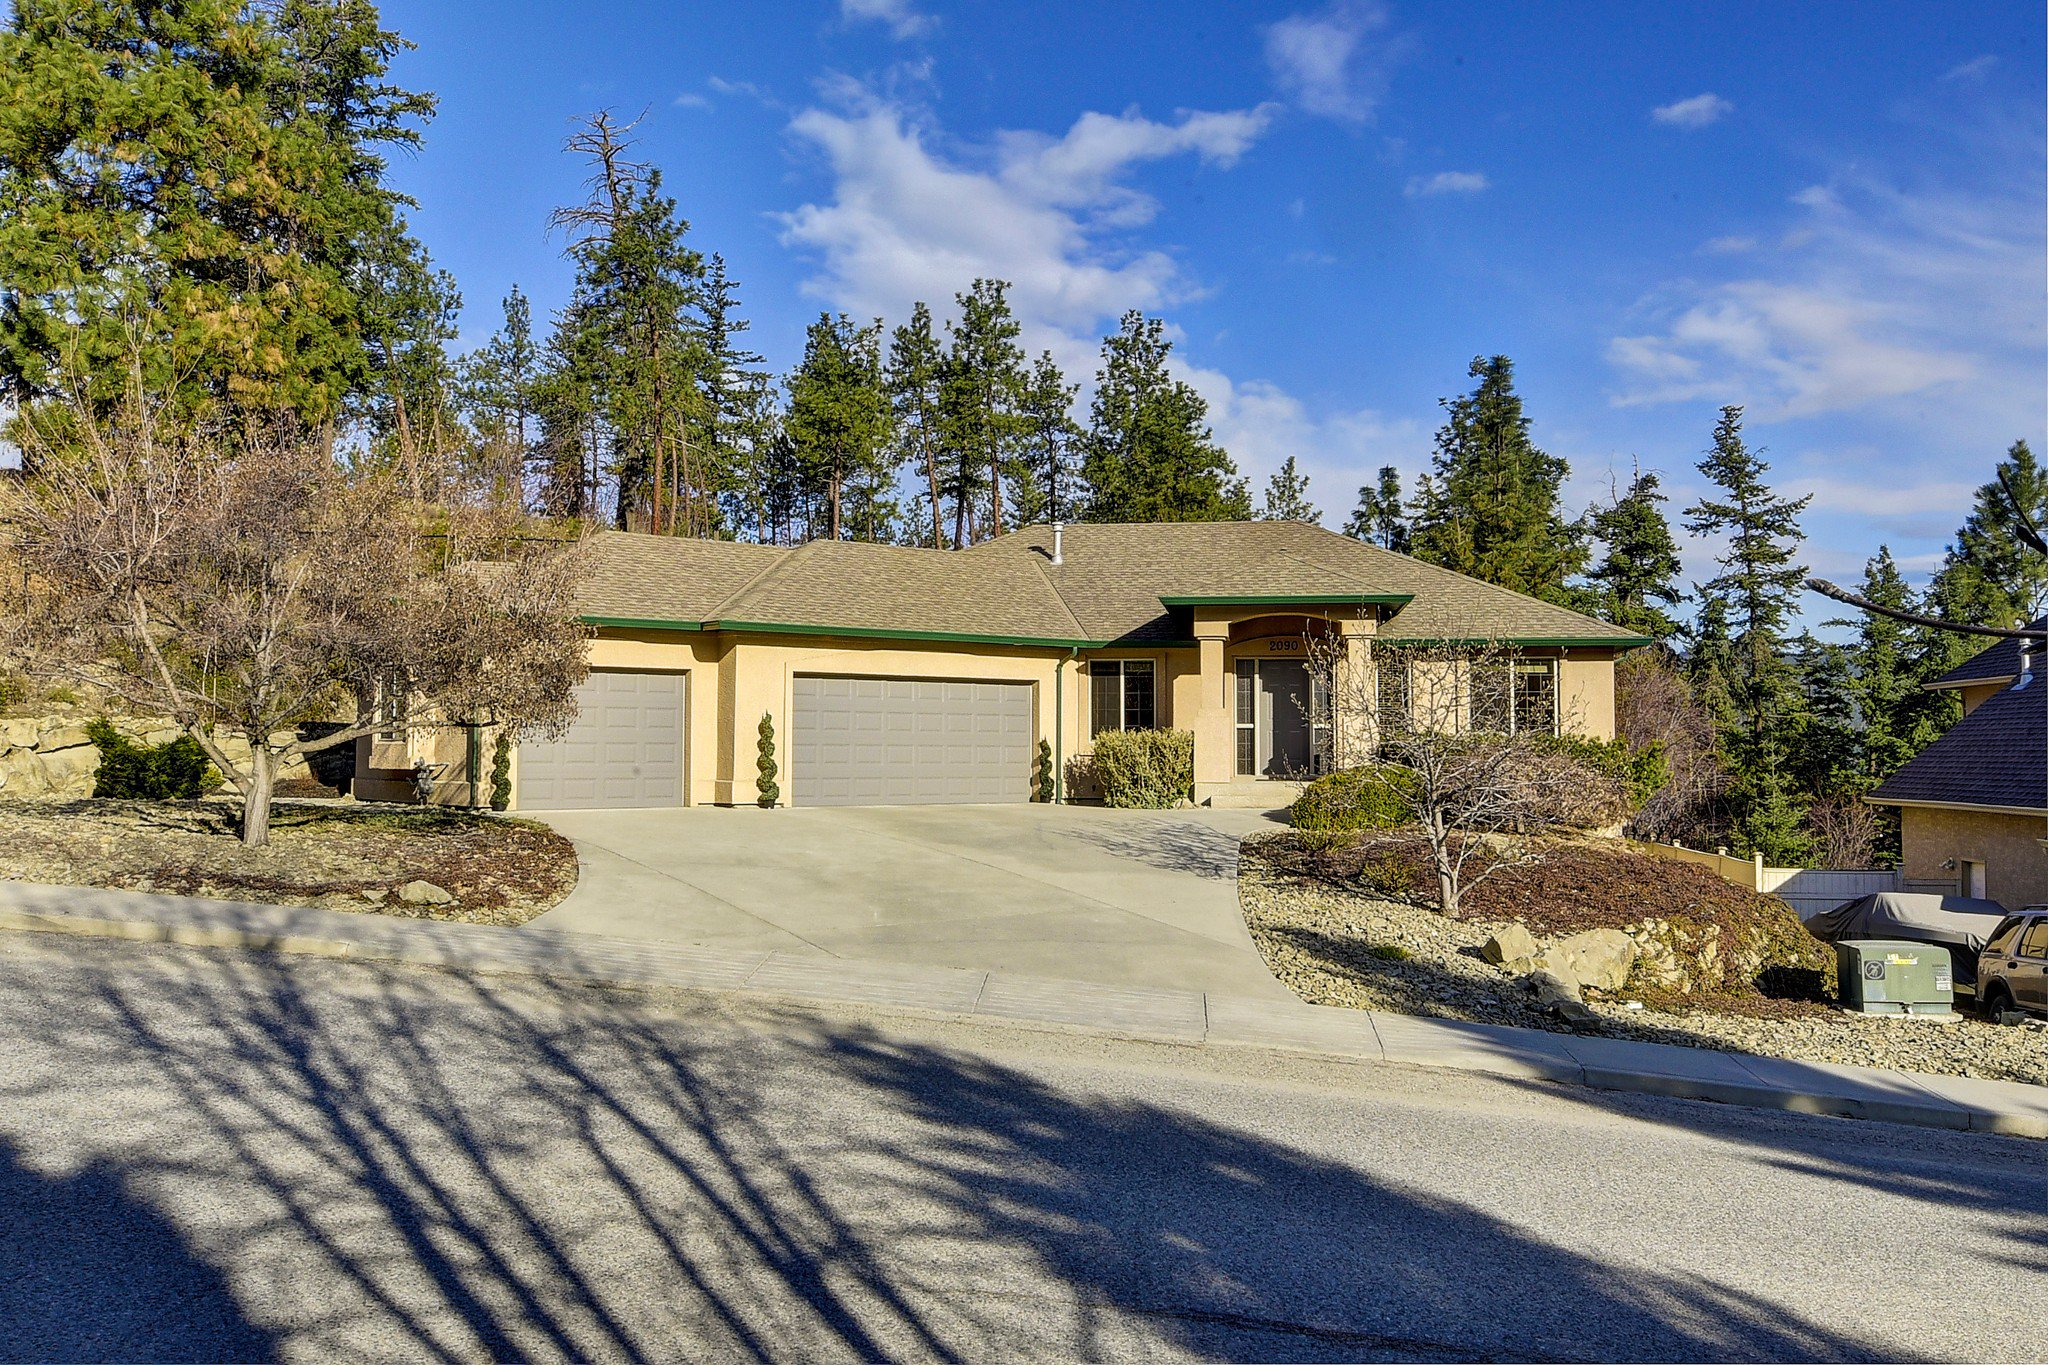 Main Photo: 2090 Chilcotin Crescent in Kelowna: Dilowrth Mt House for sale (Central Okanagan)  : MLS®# 10201594